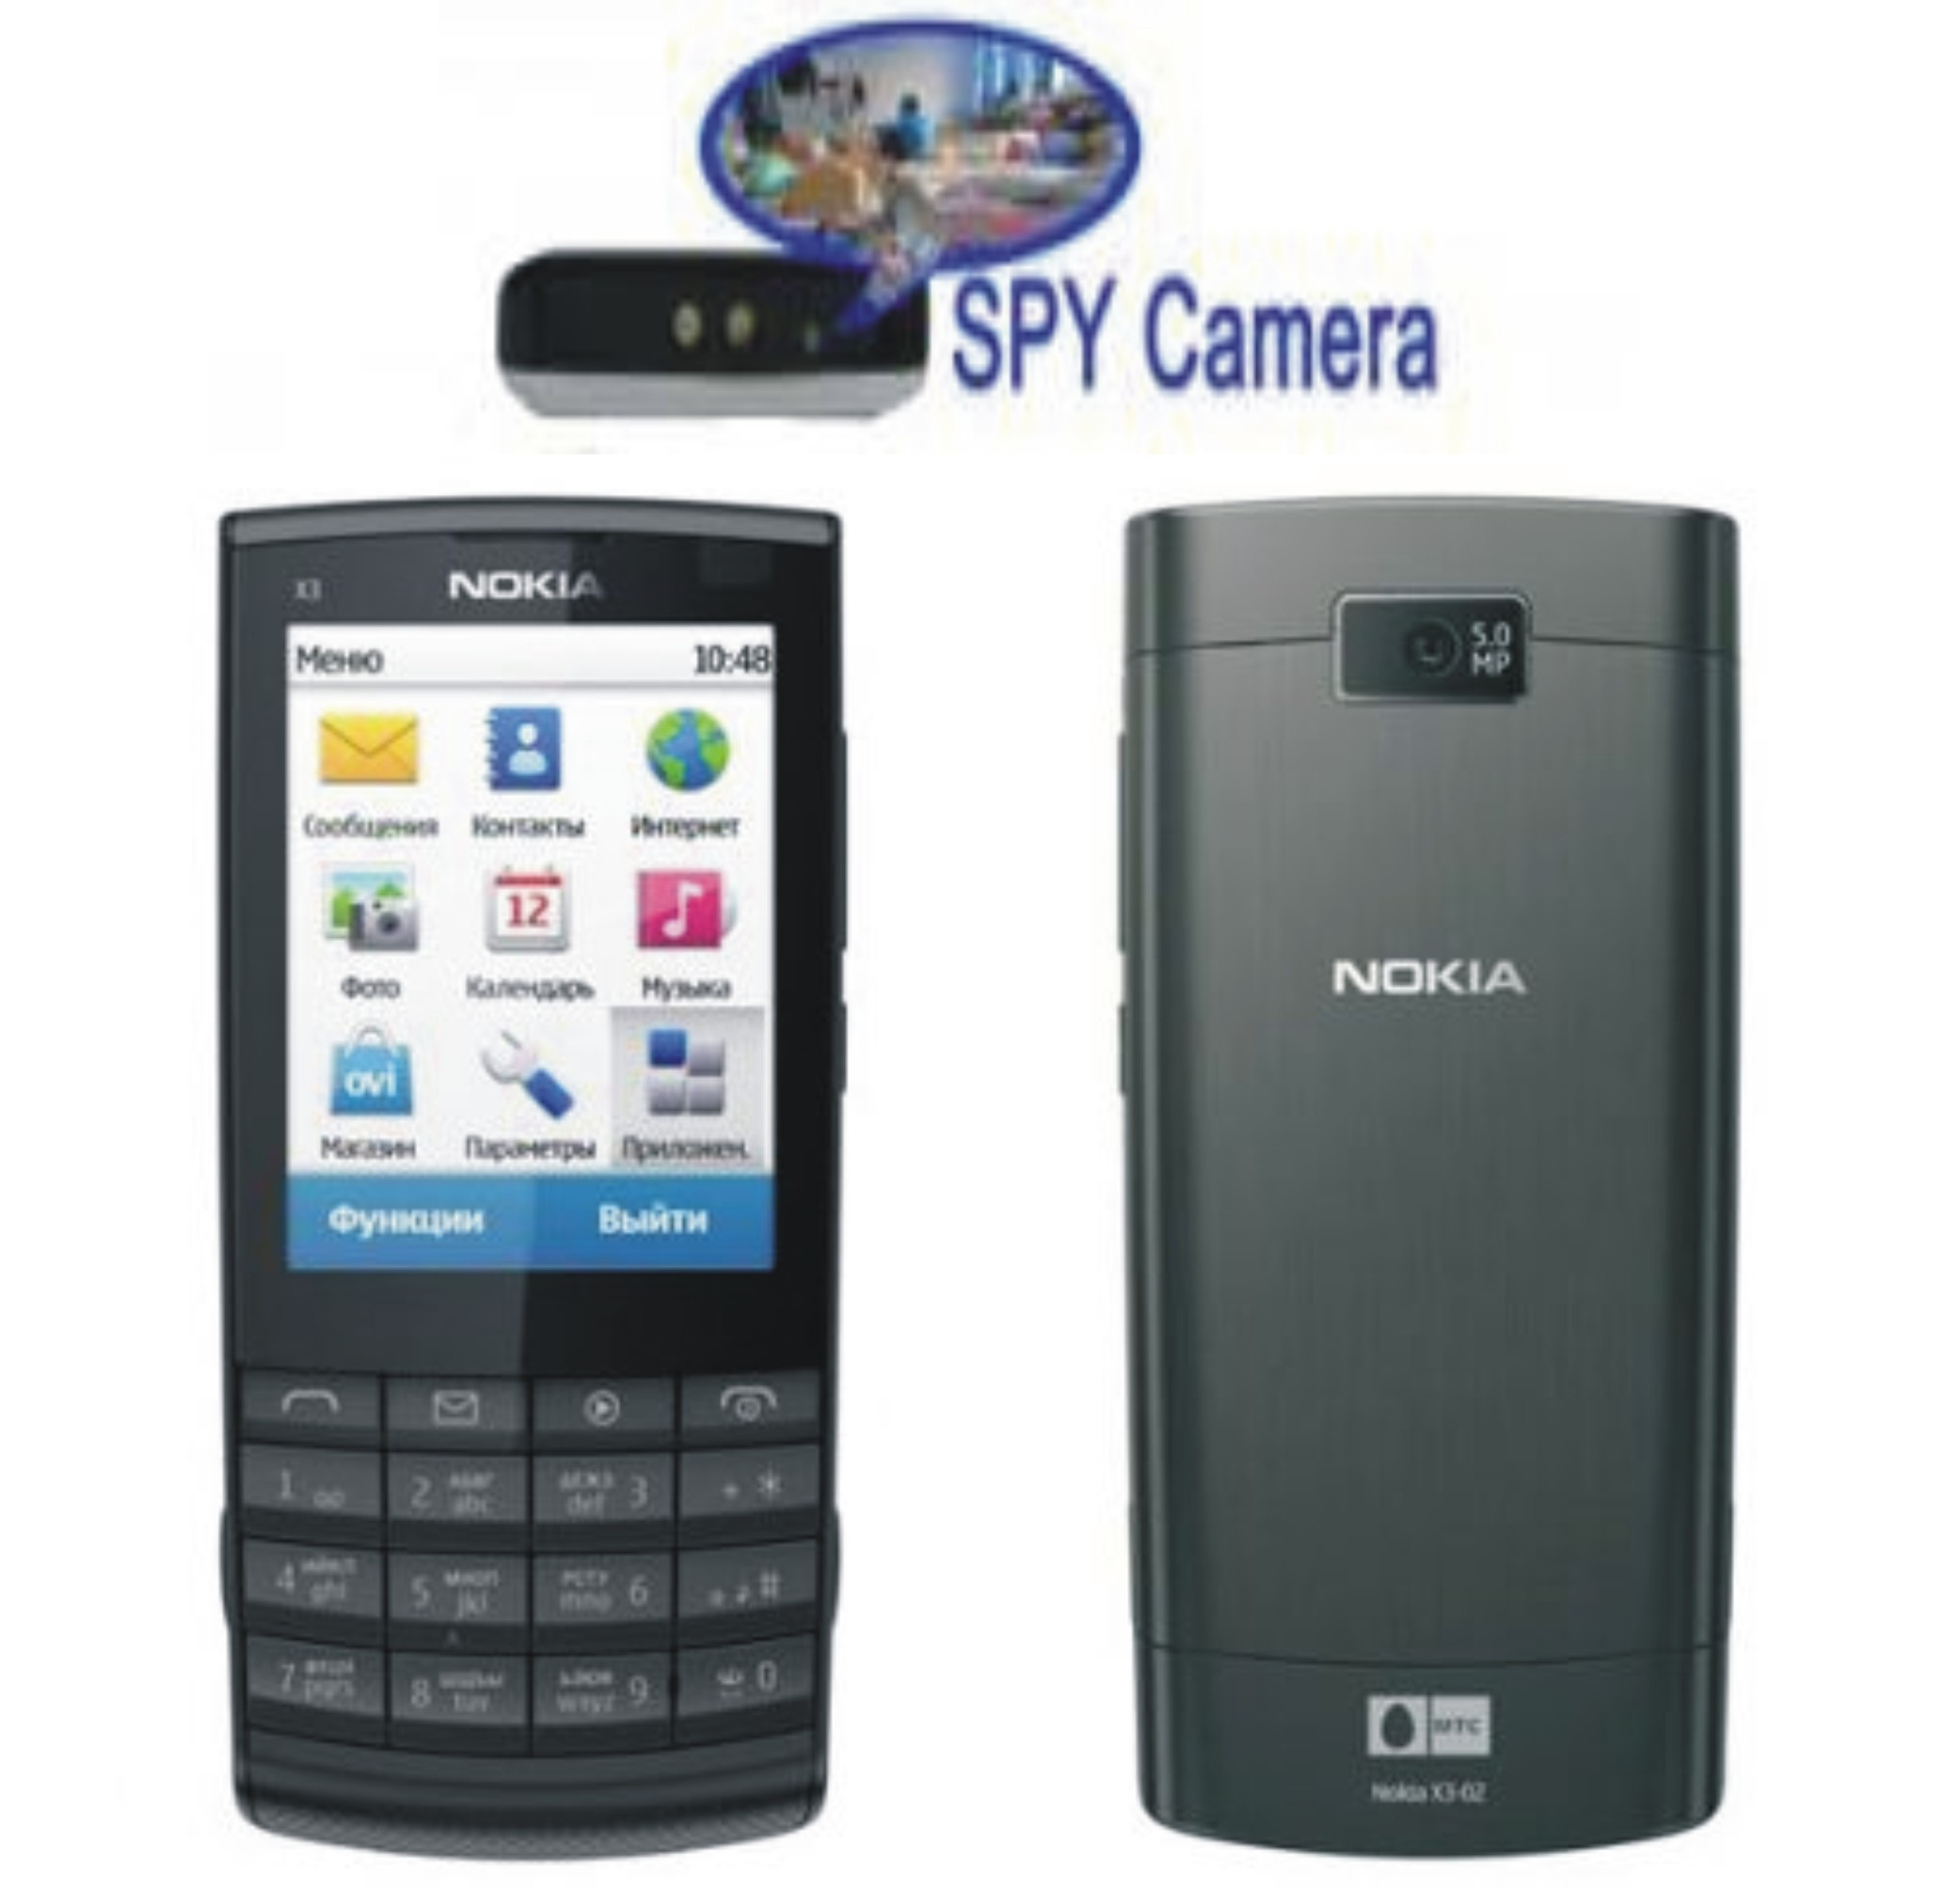 Spy Camera In Nokia Phone Touch Screen In Rajam